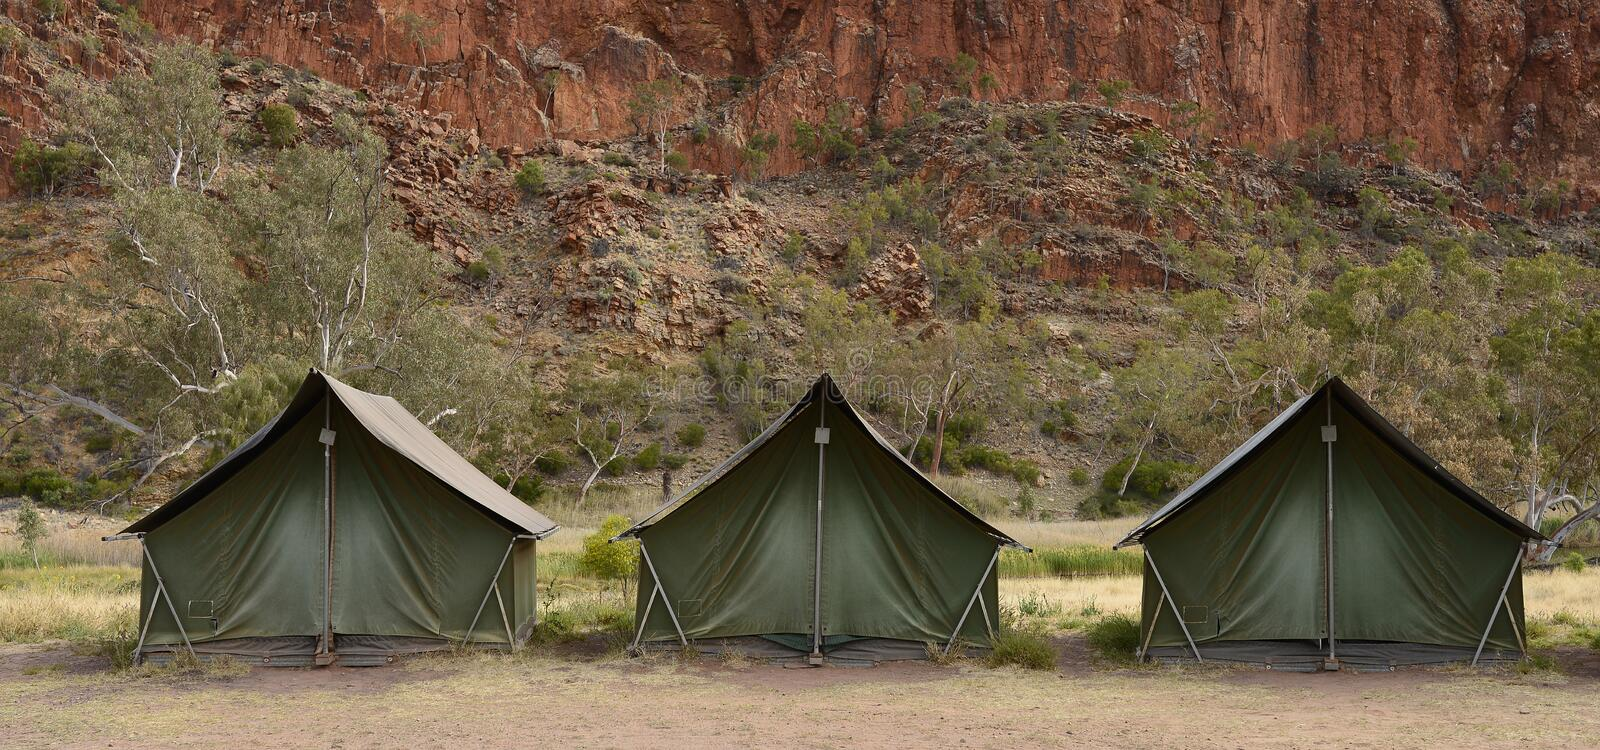 Canvas Tents at Campsite in Outback Australia. royalty free stock images